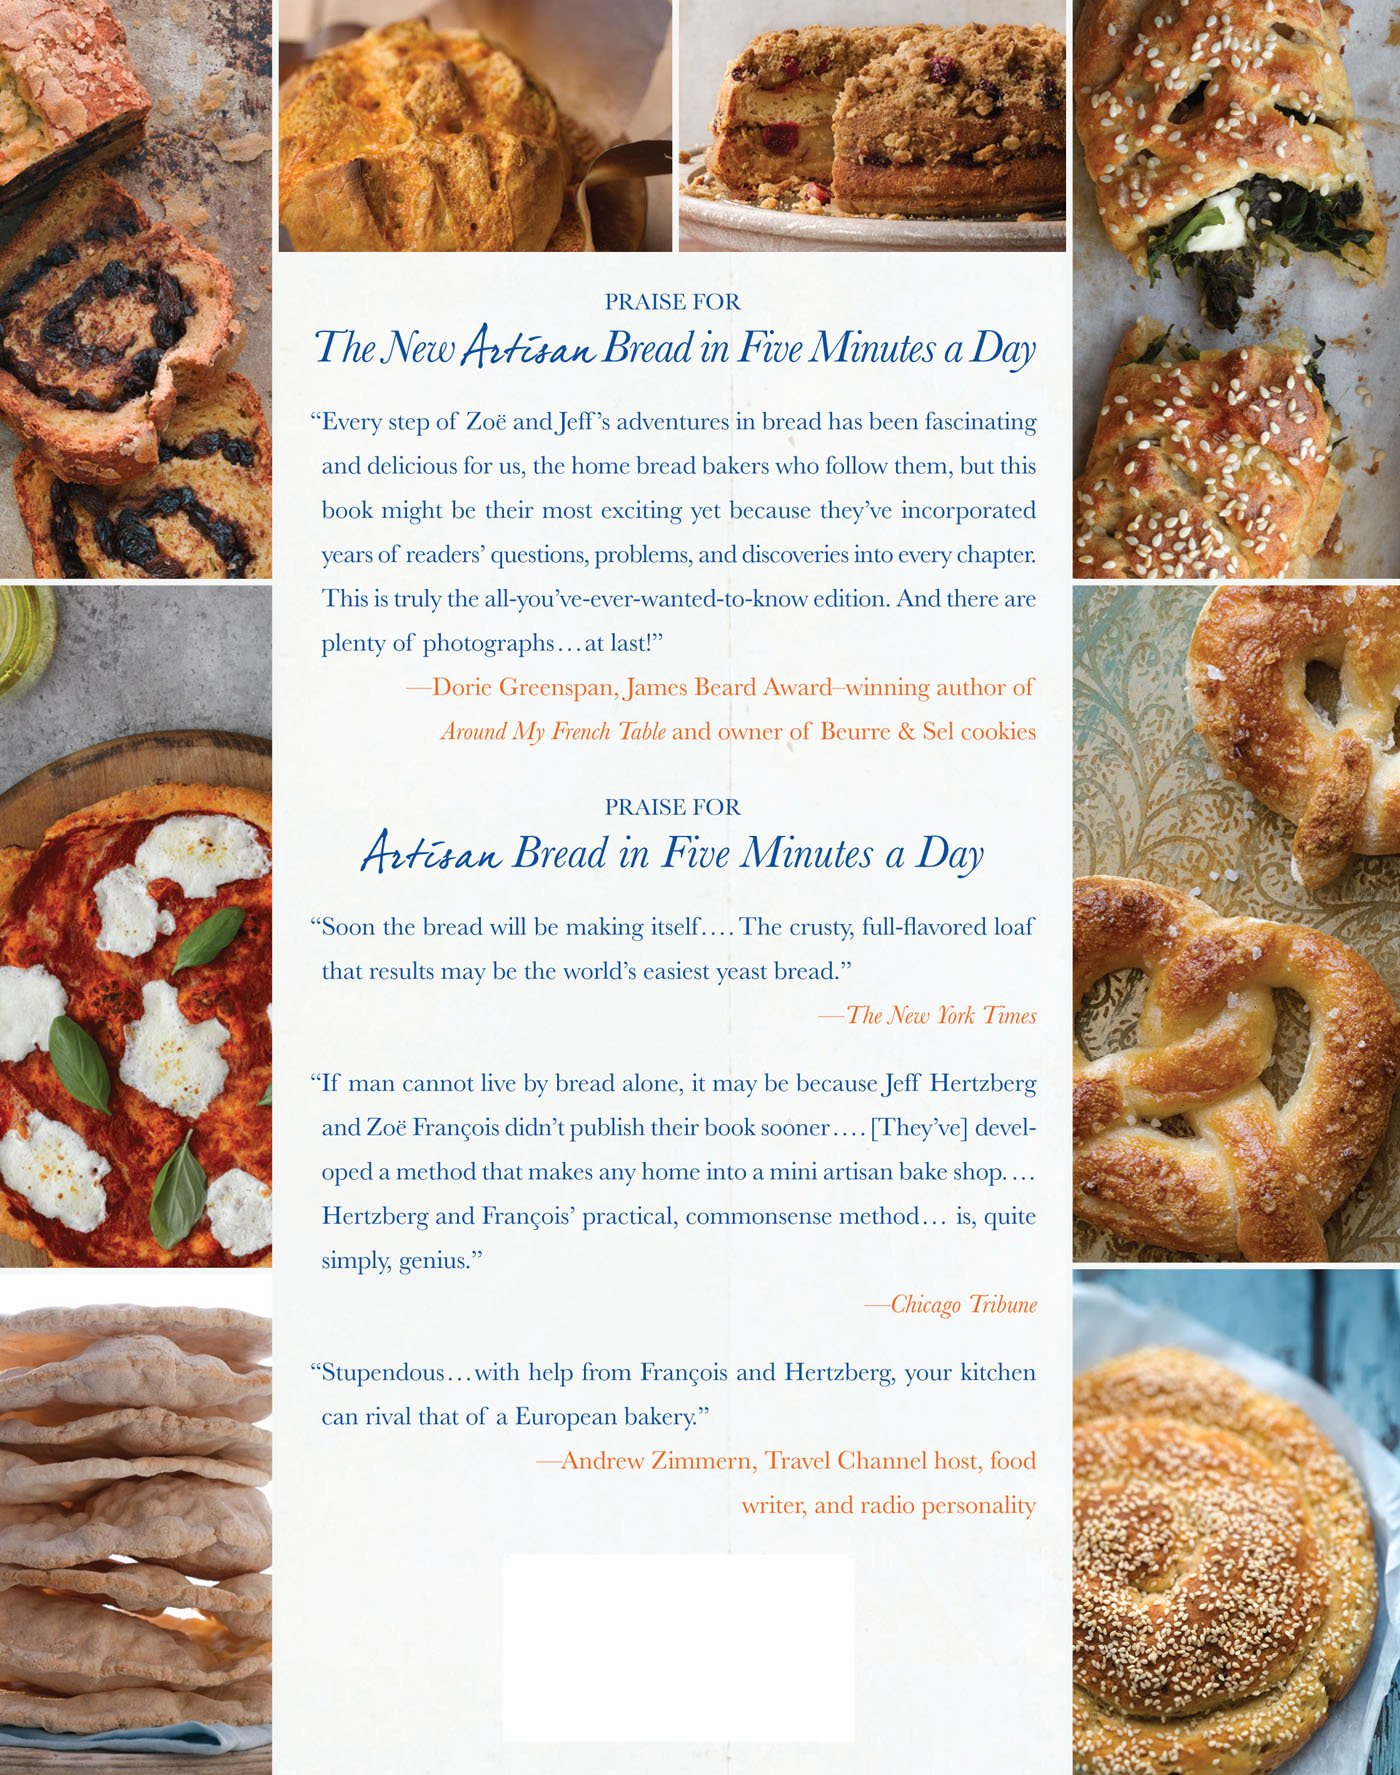 Gluten-Free Artisan Bread in Five Minutes a Day: The Baking Revolution Continues with 90 New, Delicious and Easy Recipes Made with Gluten-Free Flours by Thomas Dunne Books